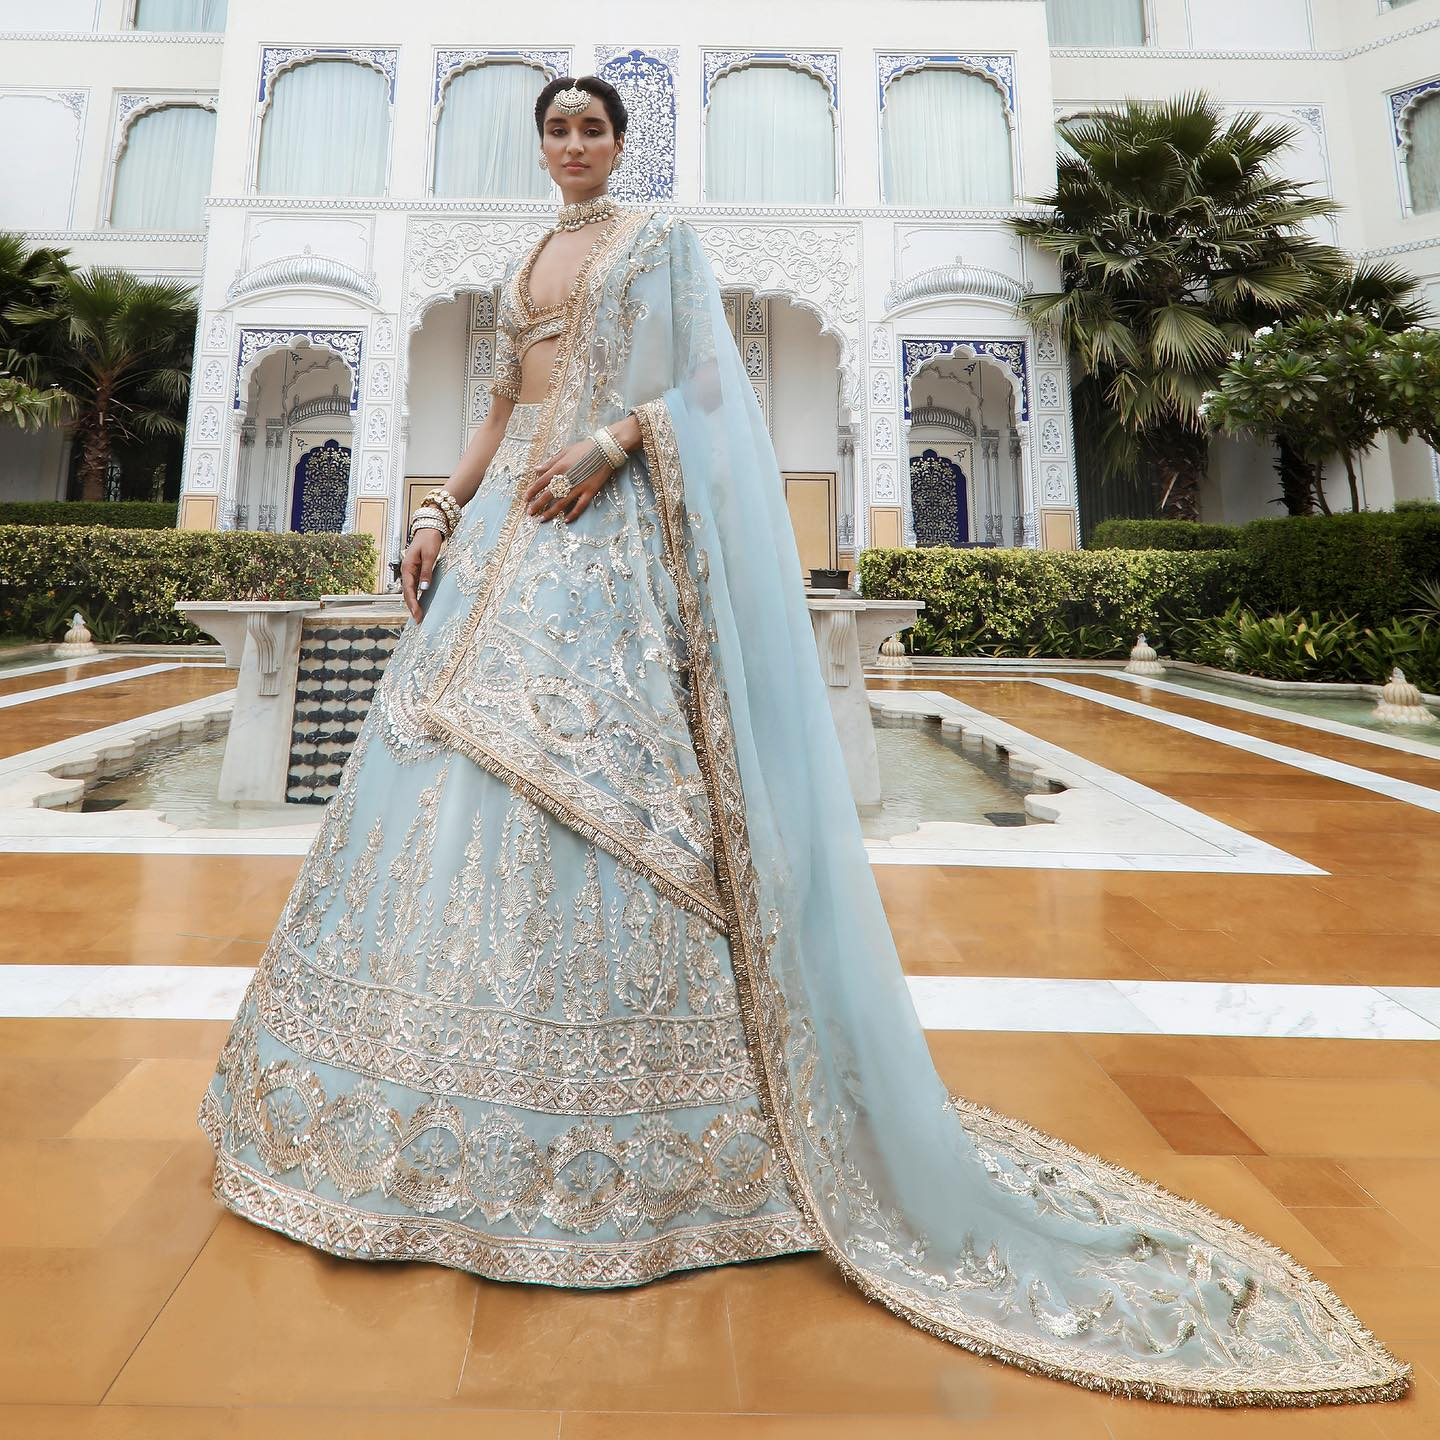 Under the dense cloud of embroideries like badla zari and sheaths of sequins glowing in its grandiosity this timeless elegance moulds into an aquatic contemporary classic with an expansion of signature #Noor bodice adding a distinct feminity to the look! 2021-04-04